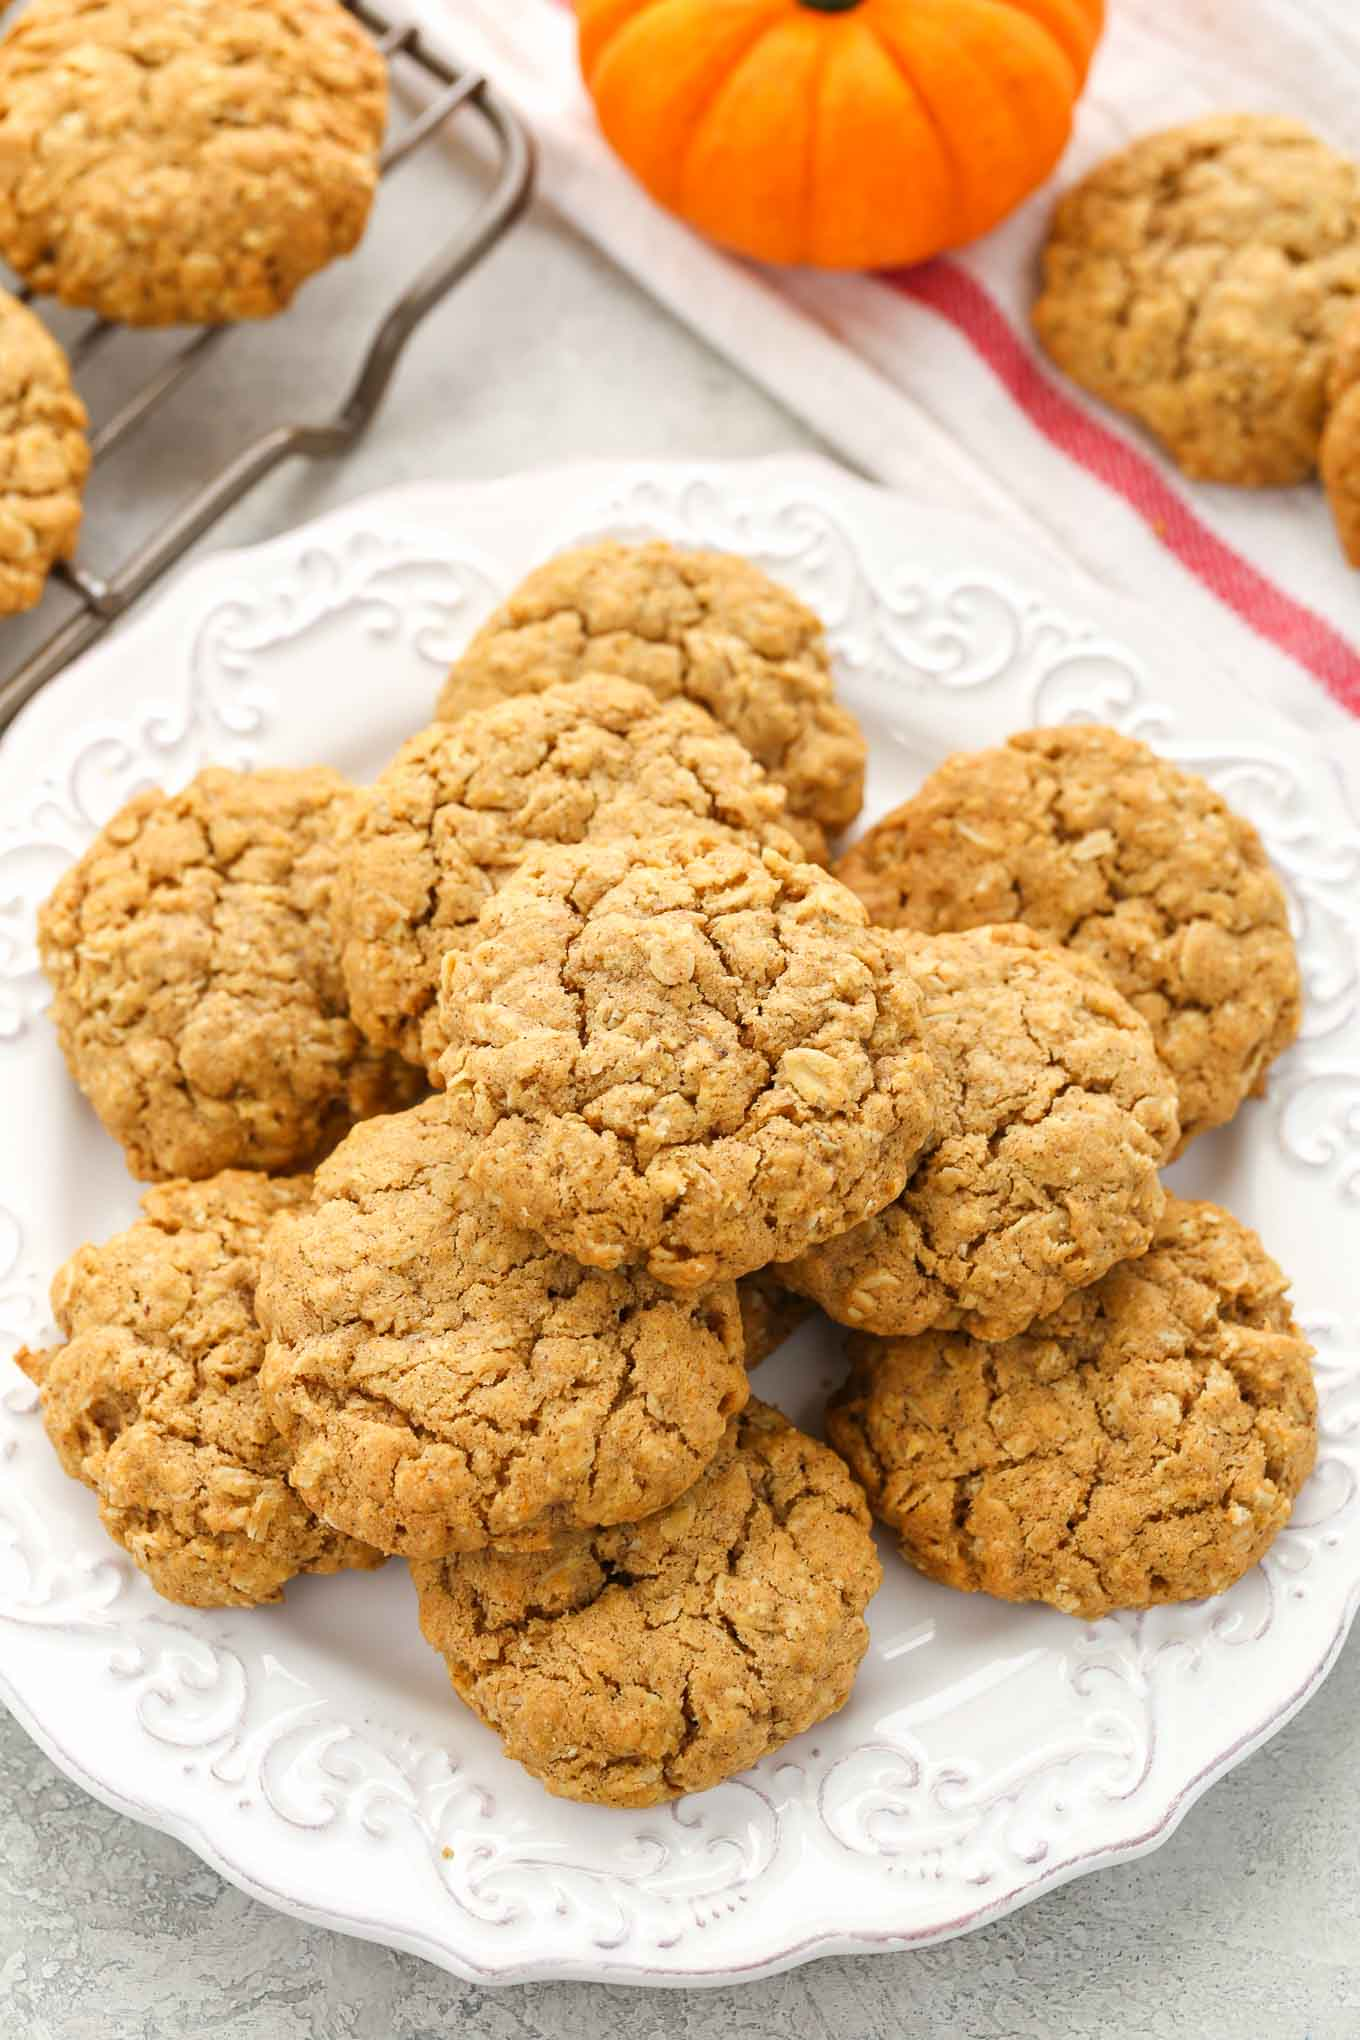 These pumpkin oatmeal cookies are super soft, chewy, thick, and full of pumpkin flavor! The perfect cookie for fall!